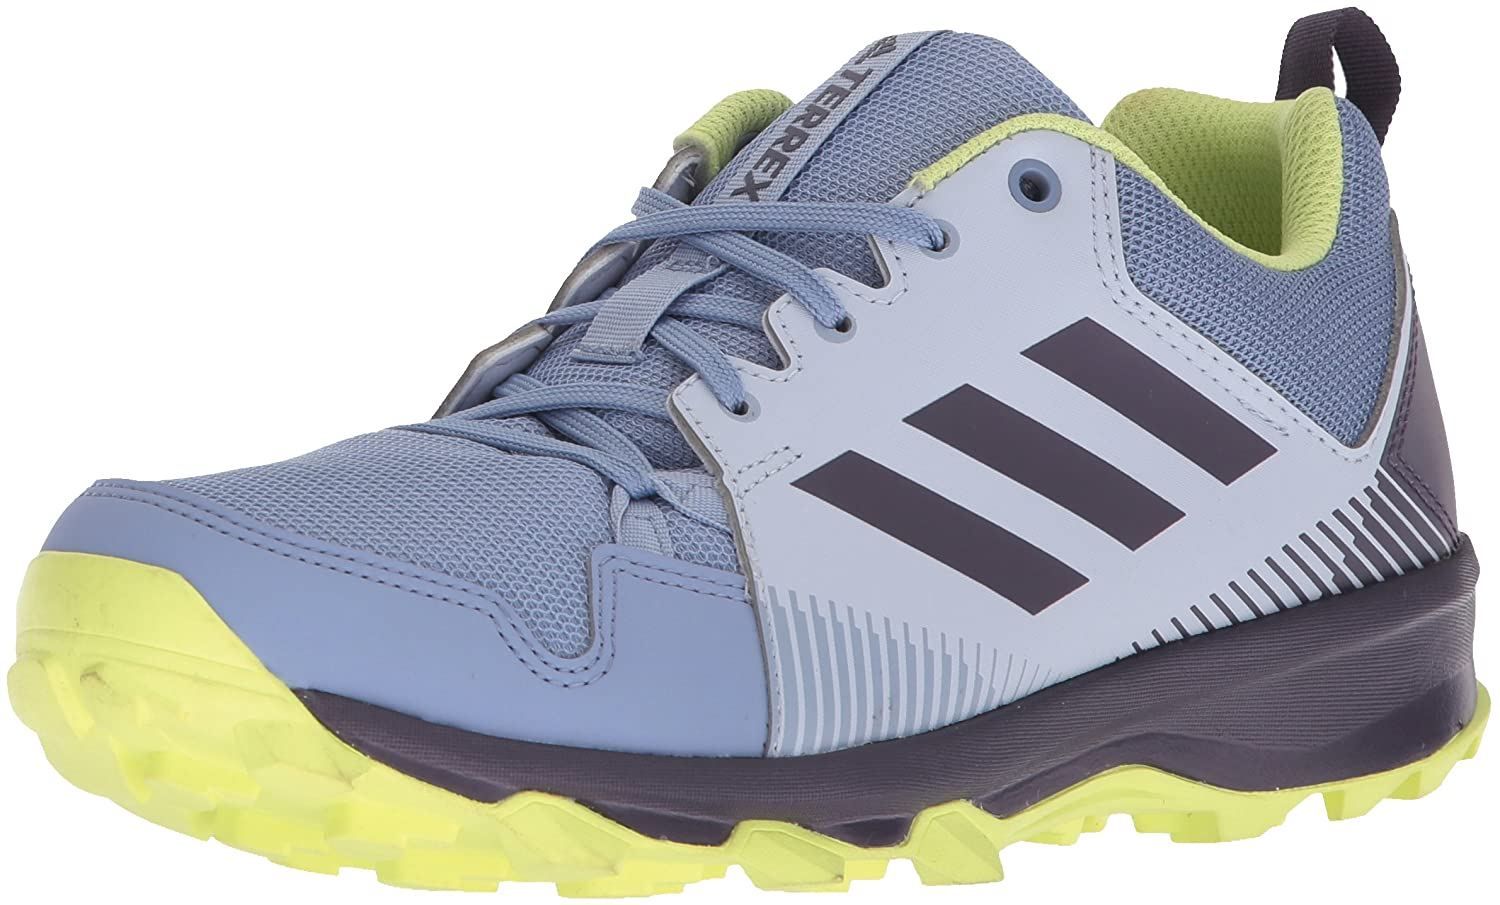 adidas outdoor Women's Terrex Tracerocker W Trail Running Shoe B072YR833W 5.5 B(M) US|Aero Blue/Trace Purple/Semi Frozen Yellow